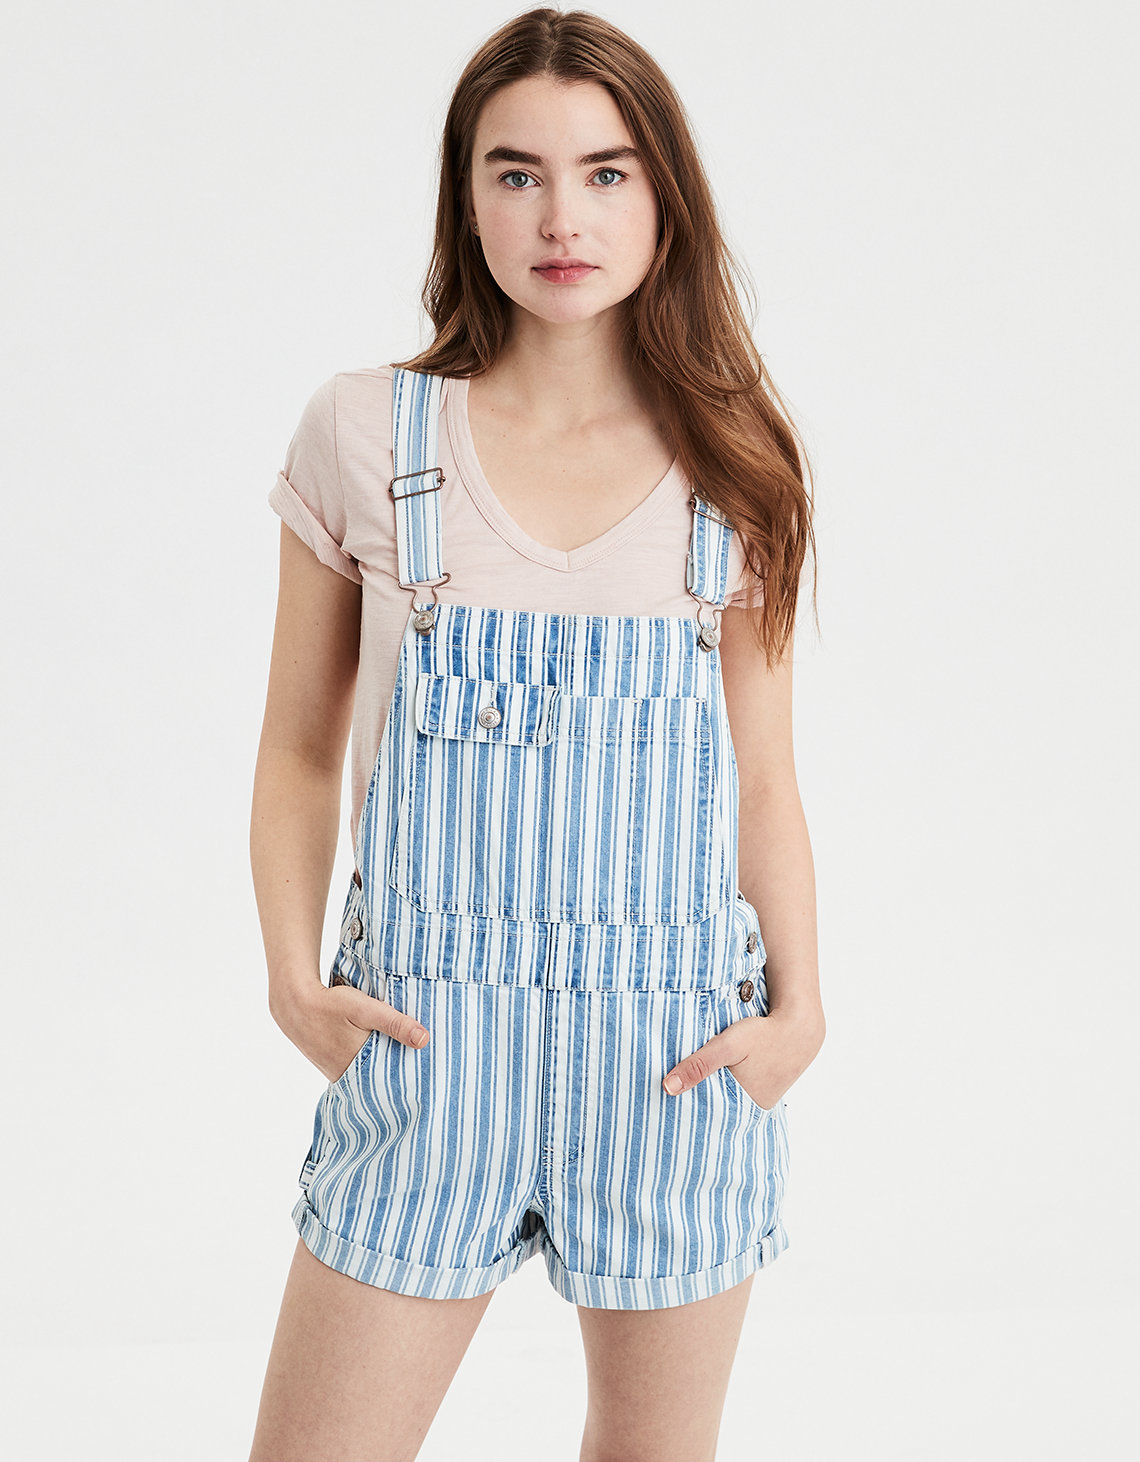 AE 90S BOYFRIEND DENIM SHORT OVERALL